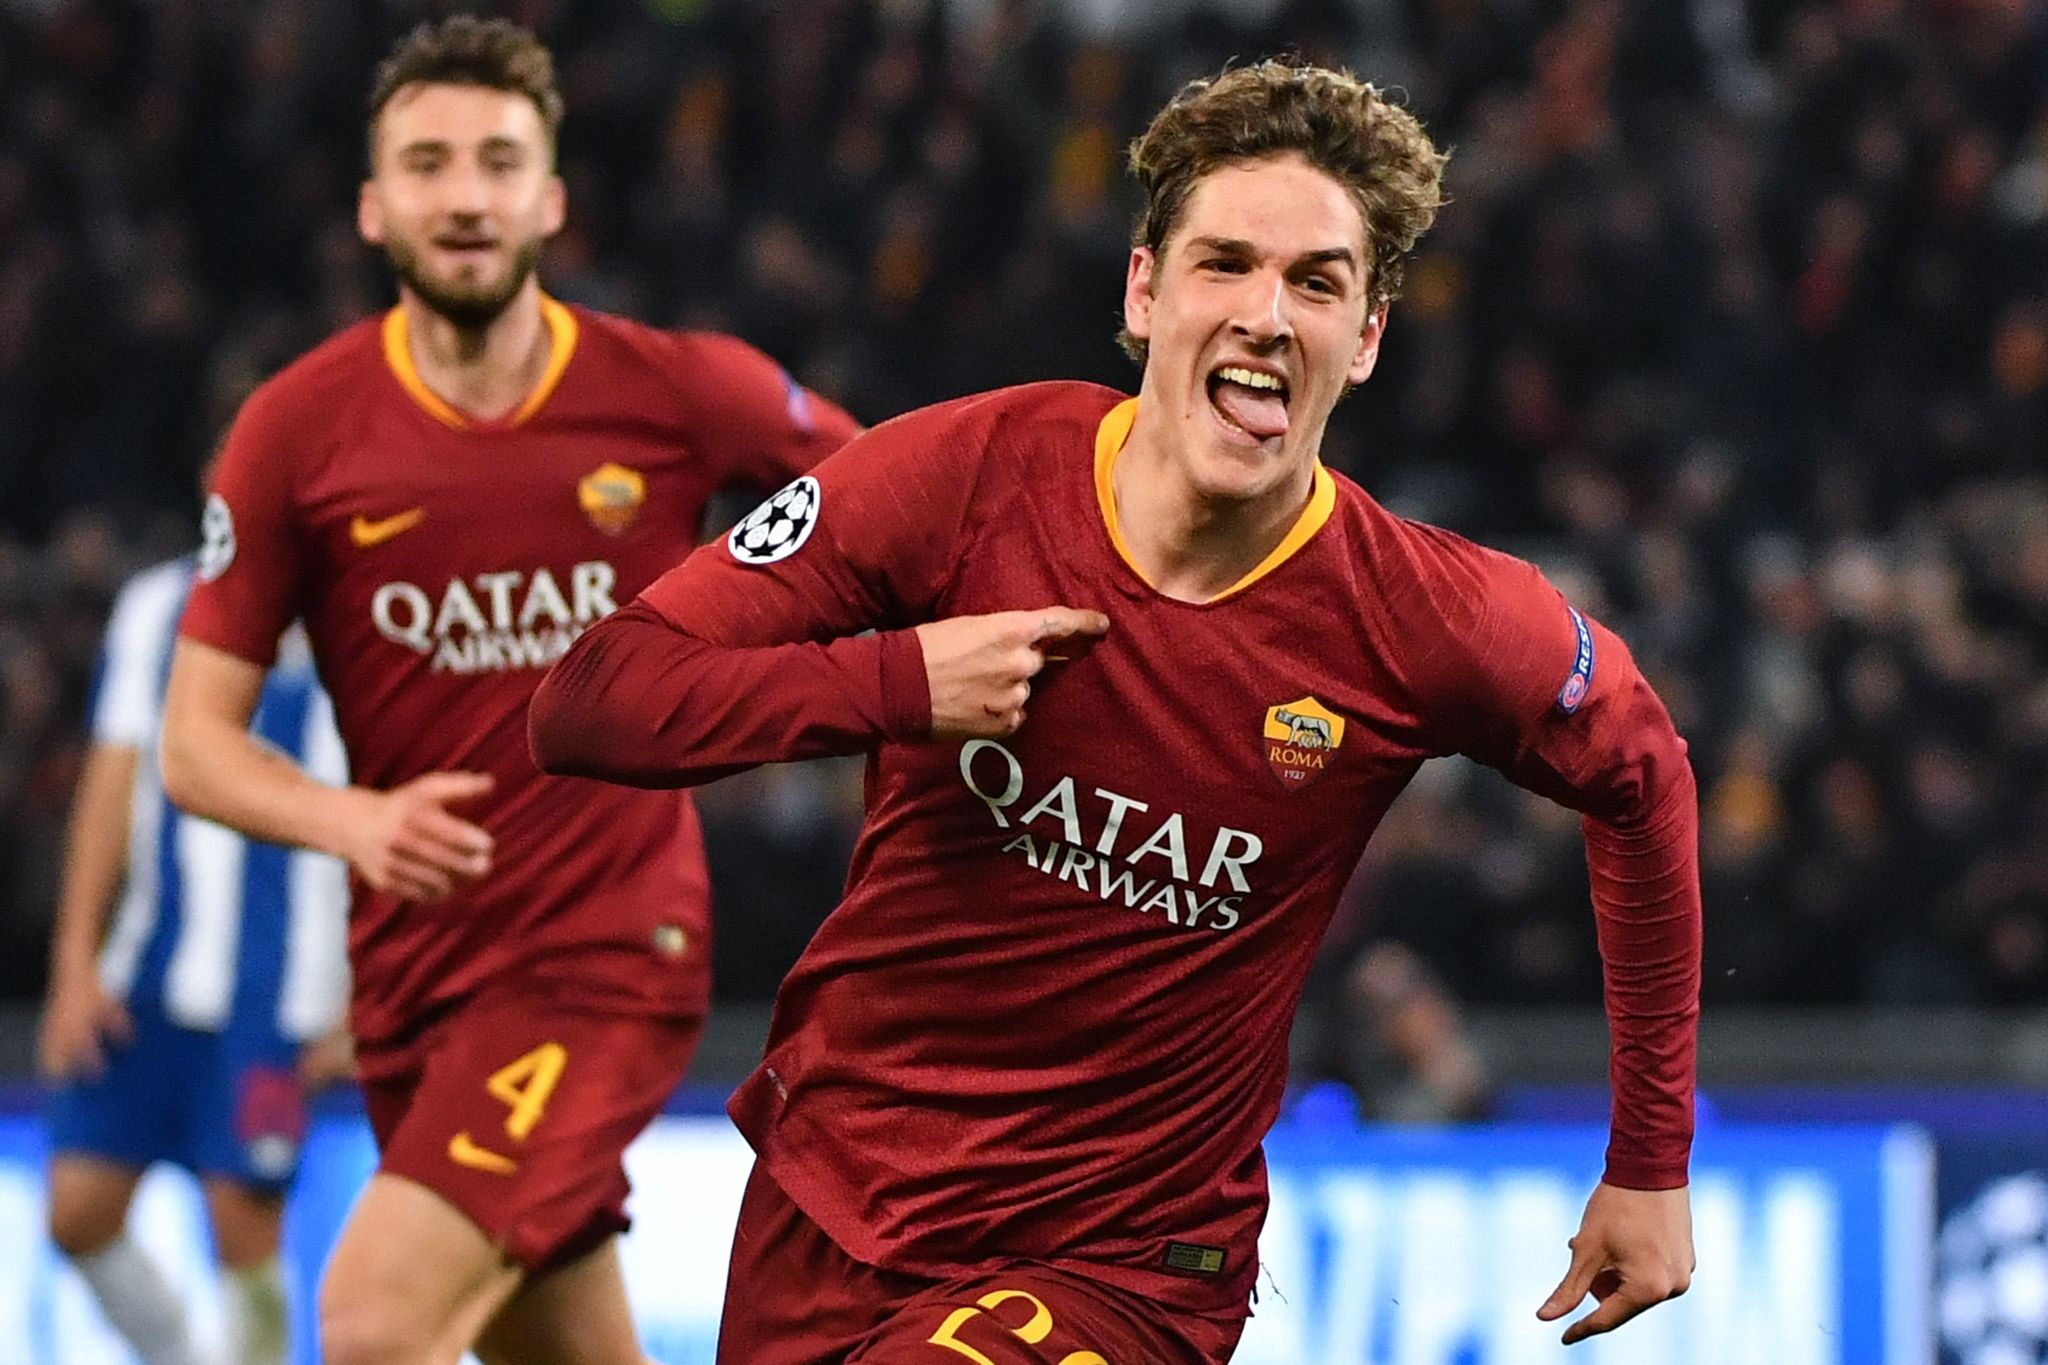 AS Roma Italian midfielder Nicolo Zaniolo celebrates after opening the scoring during the UEFA Champions League round of 16, first leg football match AS Roma vs FC Porto on February 12, 2019 at the Olympic stadium in Rome. (Photo by Andreas SOLARO / AFP)